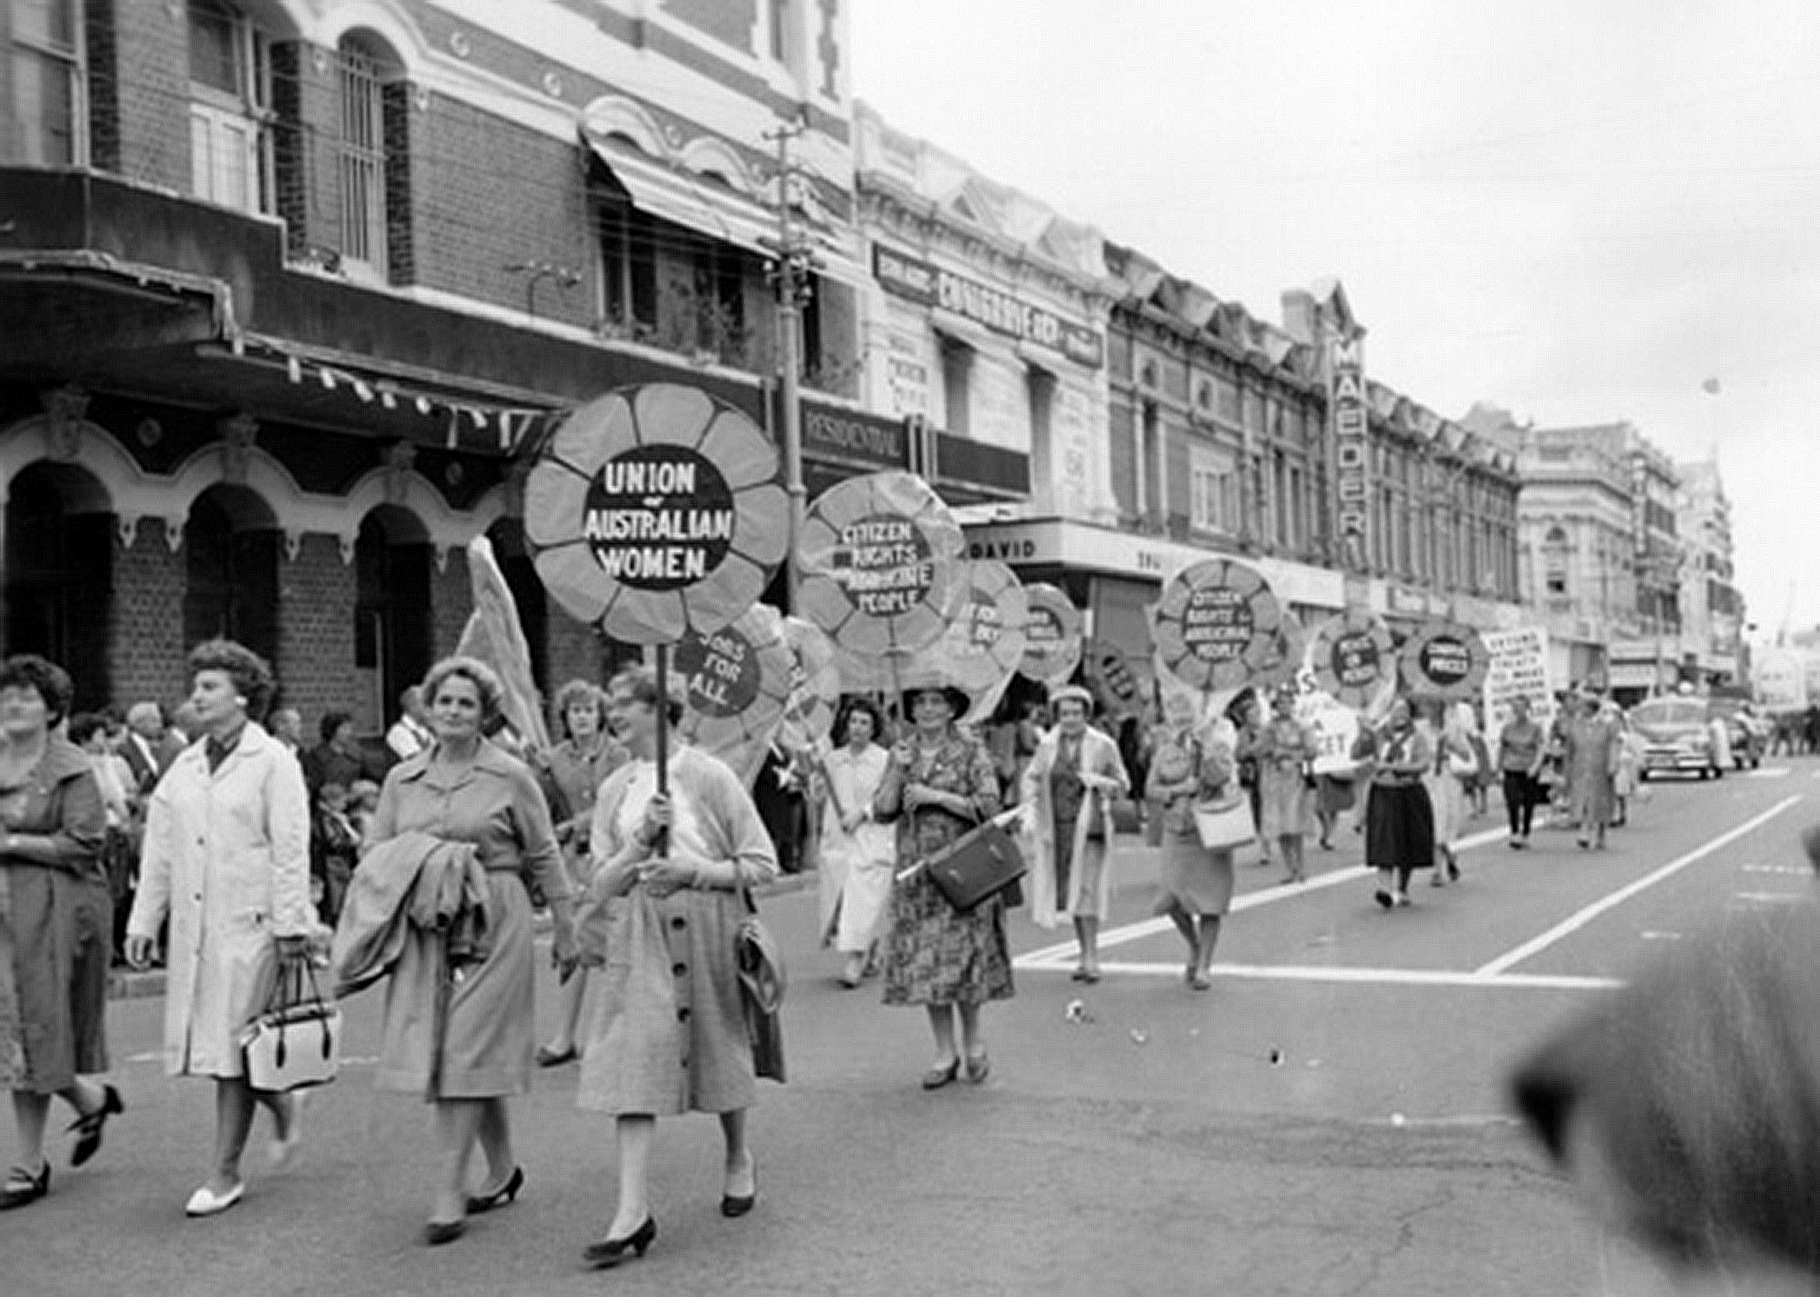 Women march in May Day 1963